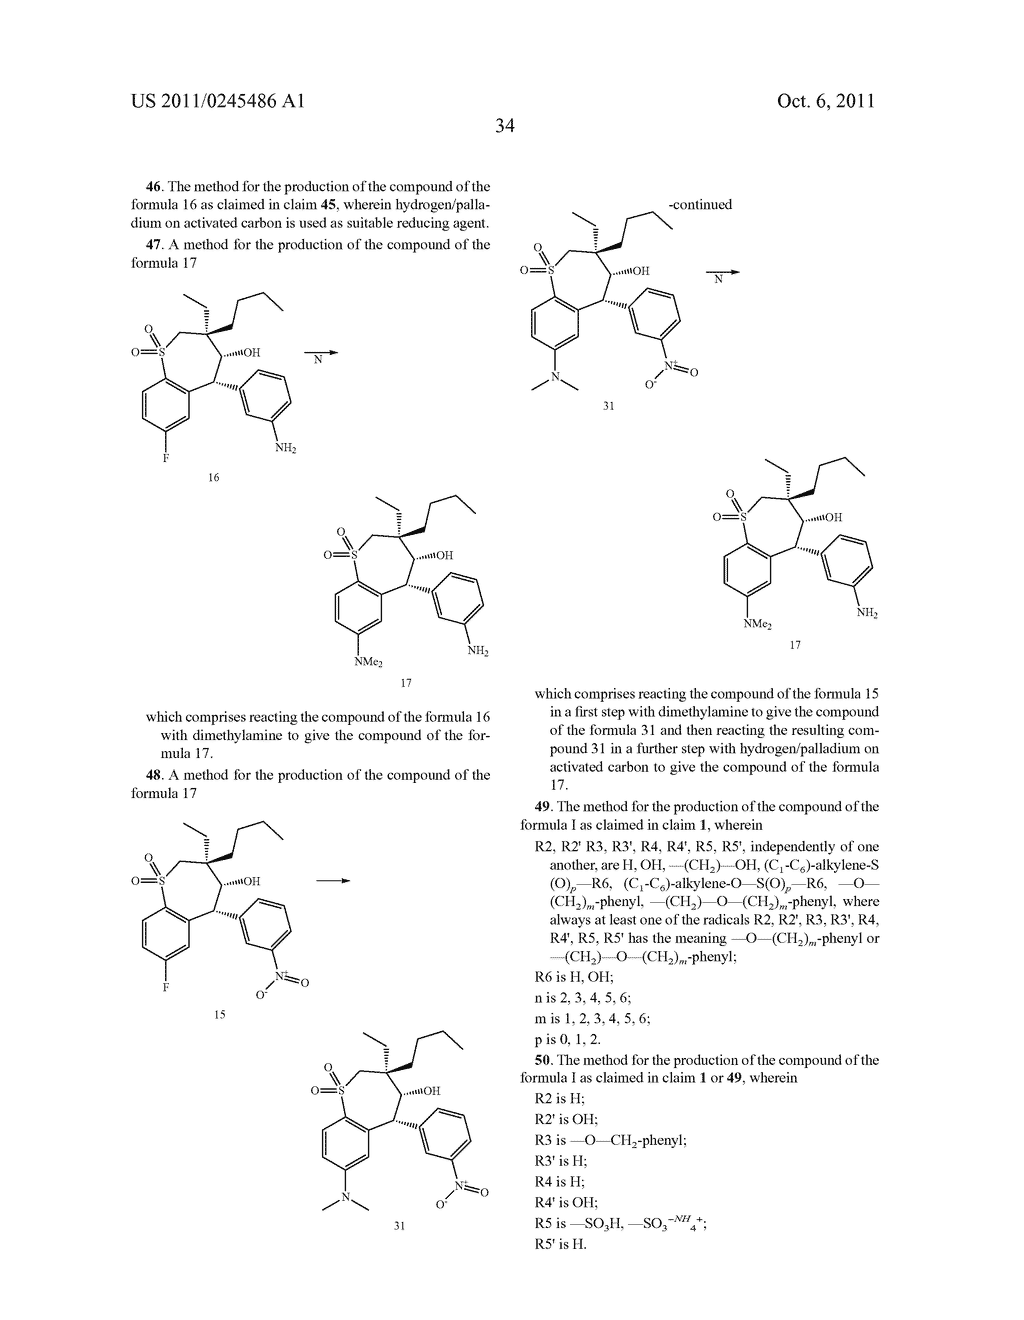 METHOD FOR THE PRODUCTION OF 1,4-BENZOTHIEPIN-1,1-DIOXIDE DERIVATIVES - diagram, schematic, and image 35